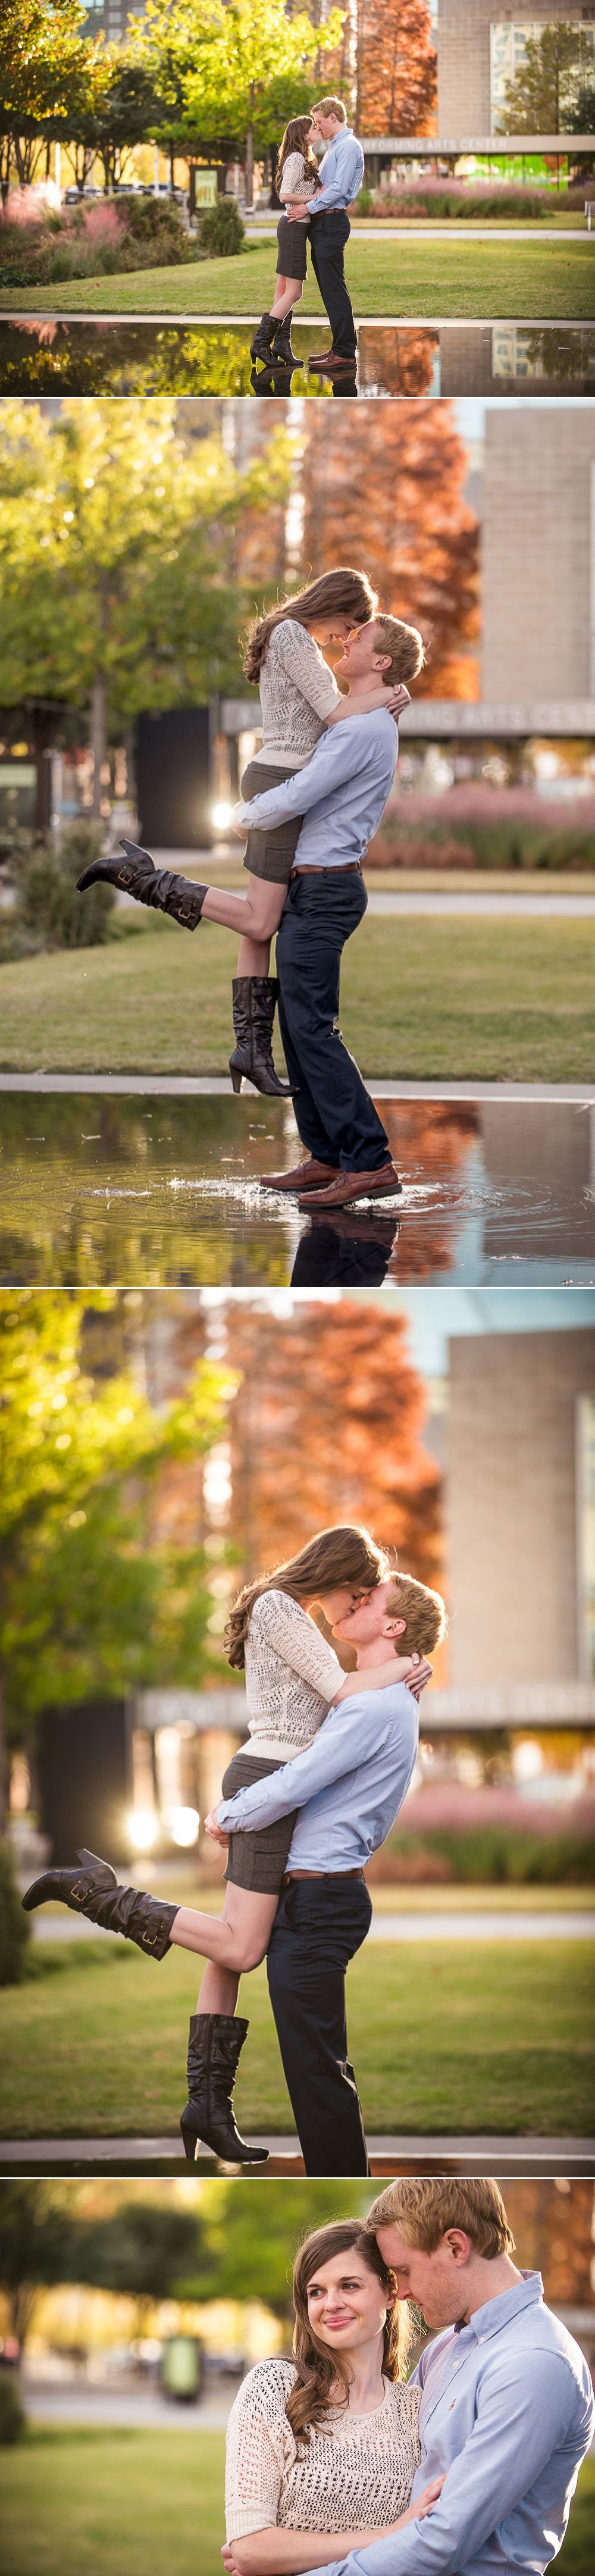 Jake and Trishas E-Session Preview 3